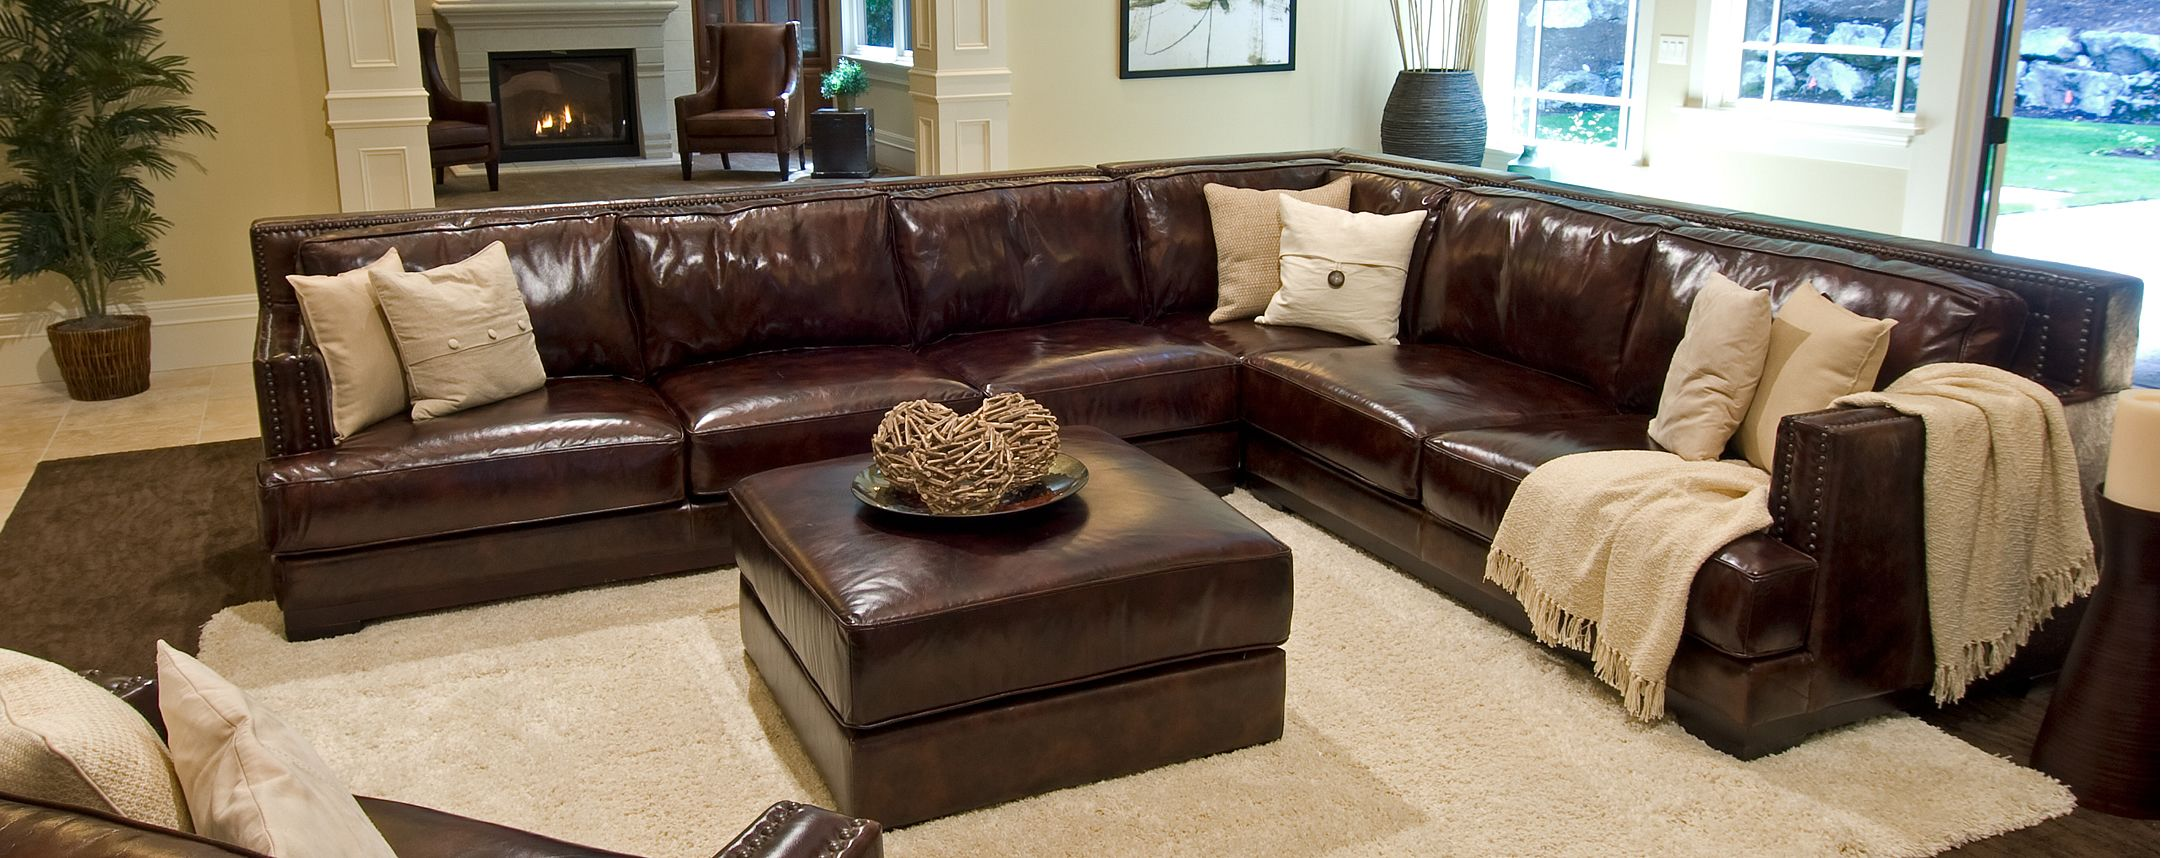 Large Leather Sectional Sofas Best Collections Of Sofas And